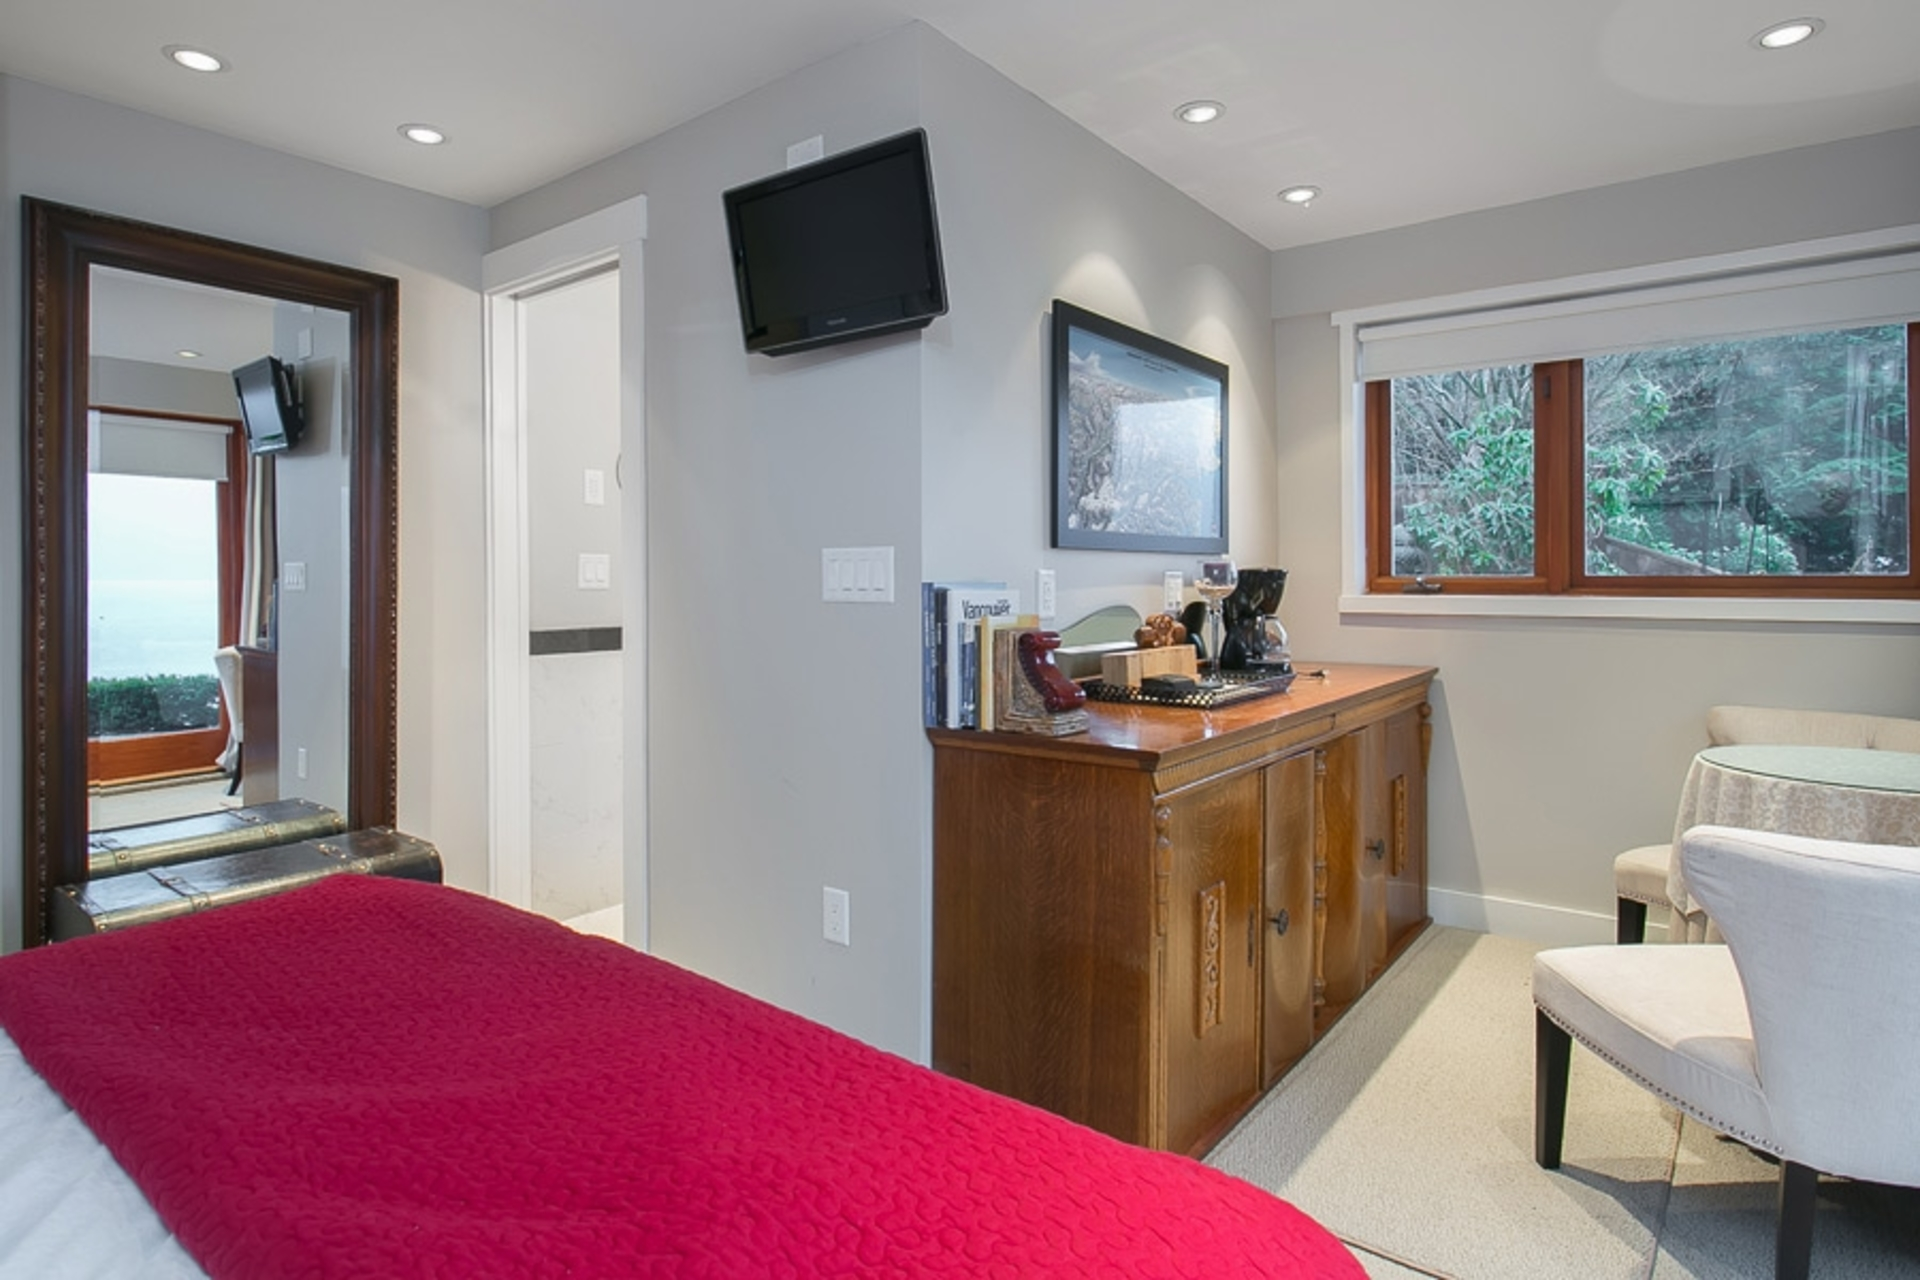 Bedroom at Address Upon Request, Deep Cove, North Vancouver